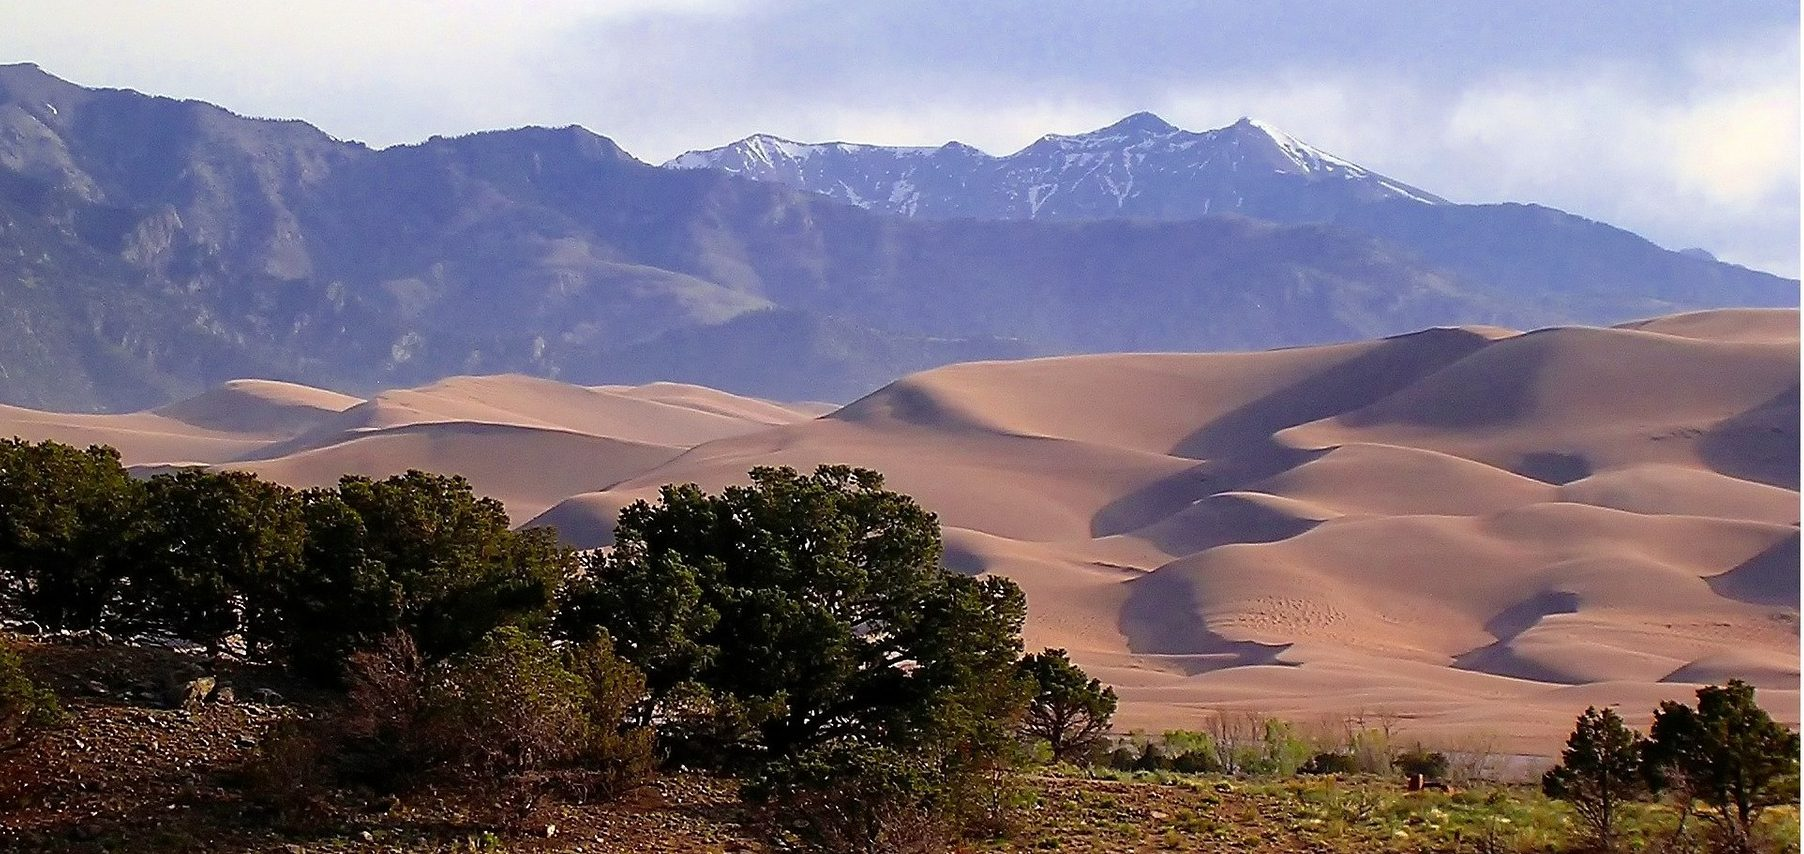 Visiting Great Sand Dunes National Park and Preserve